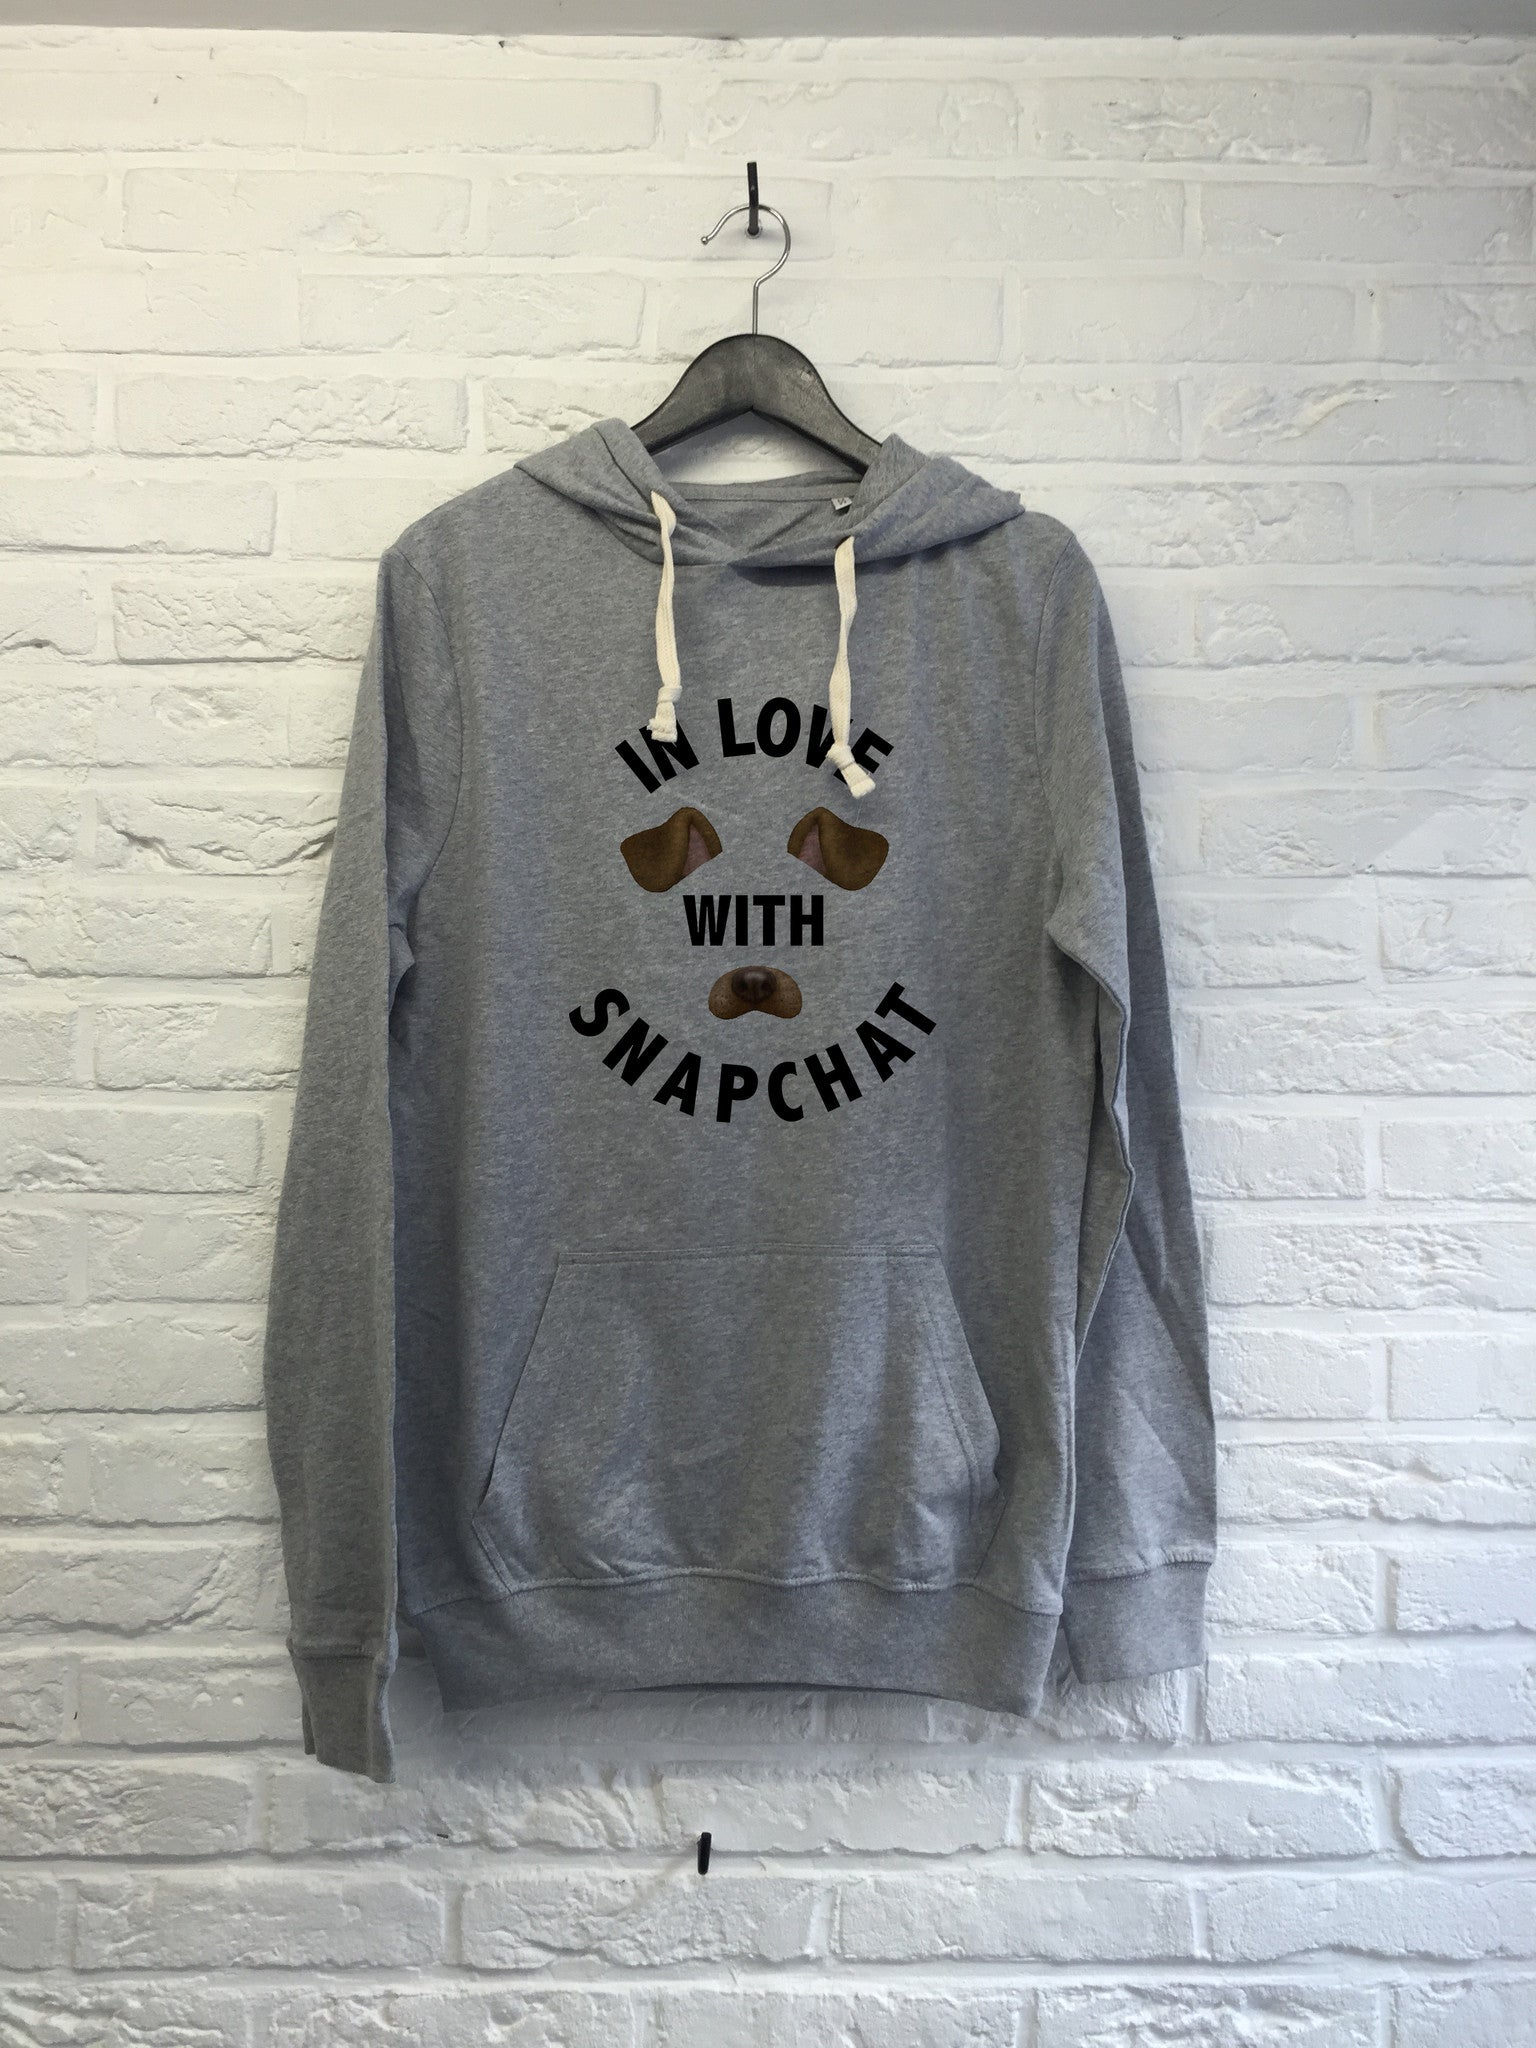 In love with Snapchat - Hoodie super soft touch-Sweat shirts-Atelier Amelot